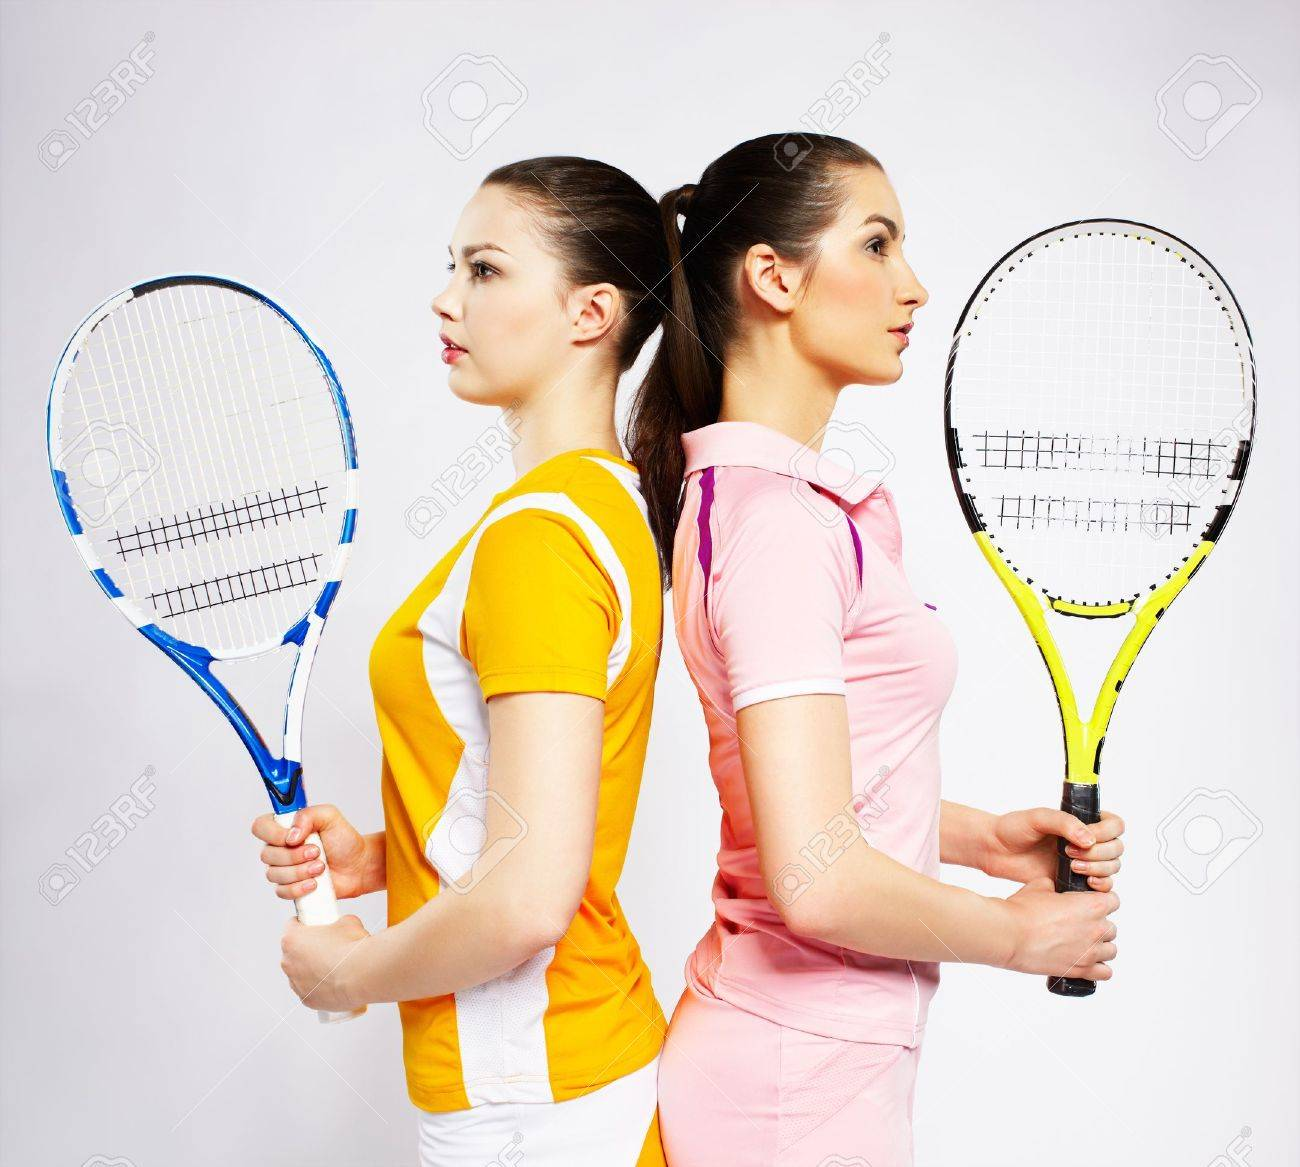 portrait of two sporty girls tennis players with rackets standing back to back Stock Photo - 8443247